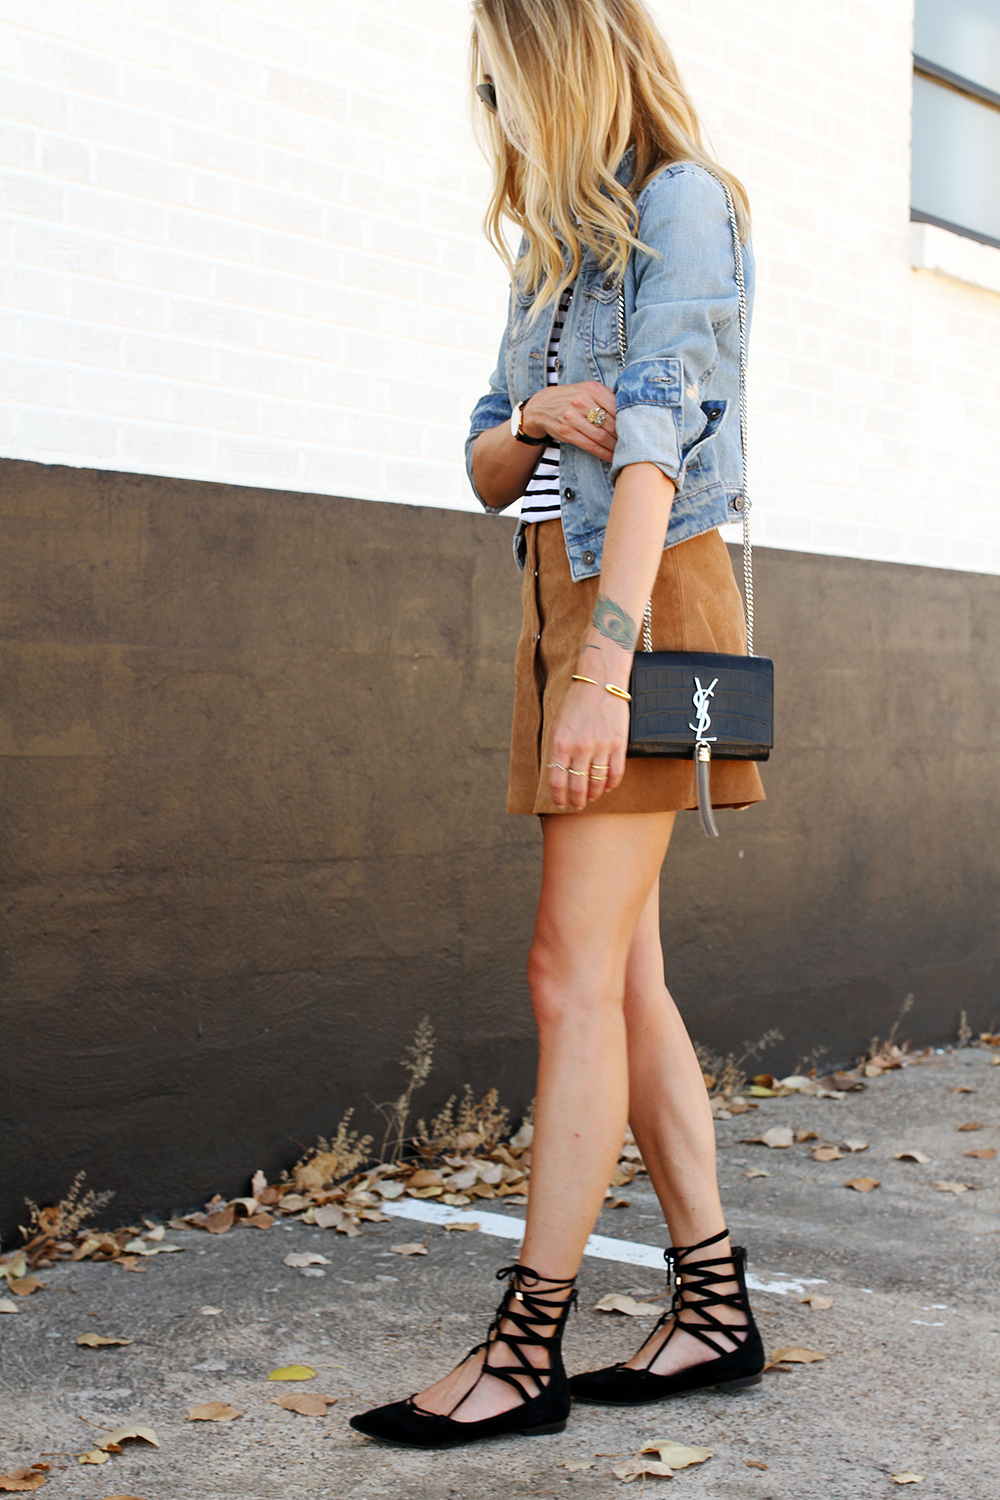 fashion-jackson-denim-jacket-topshop-suede-mini-skirt-stripe-top-black-lace-up-flats-ysl-crossbody